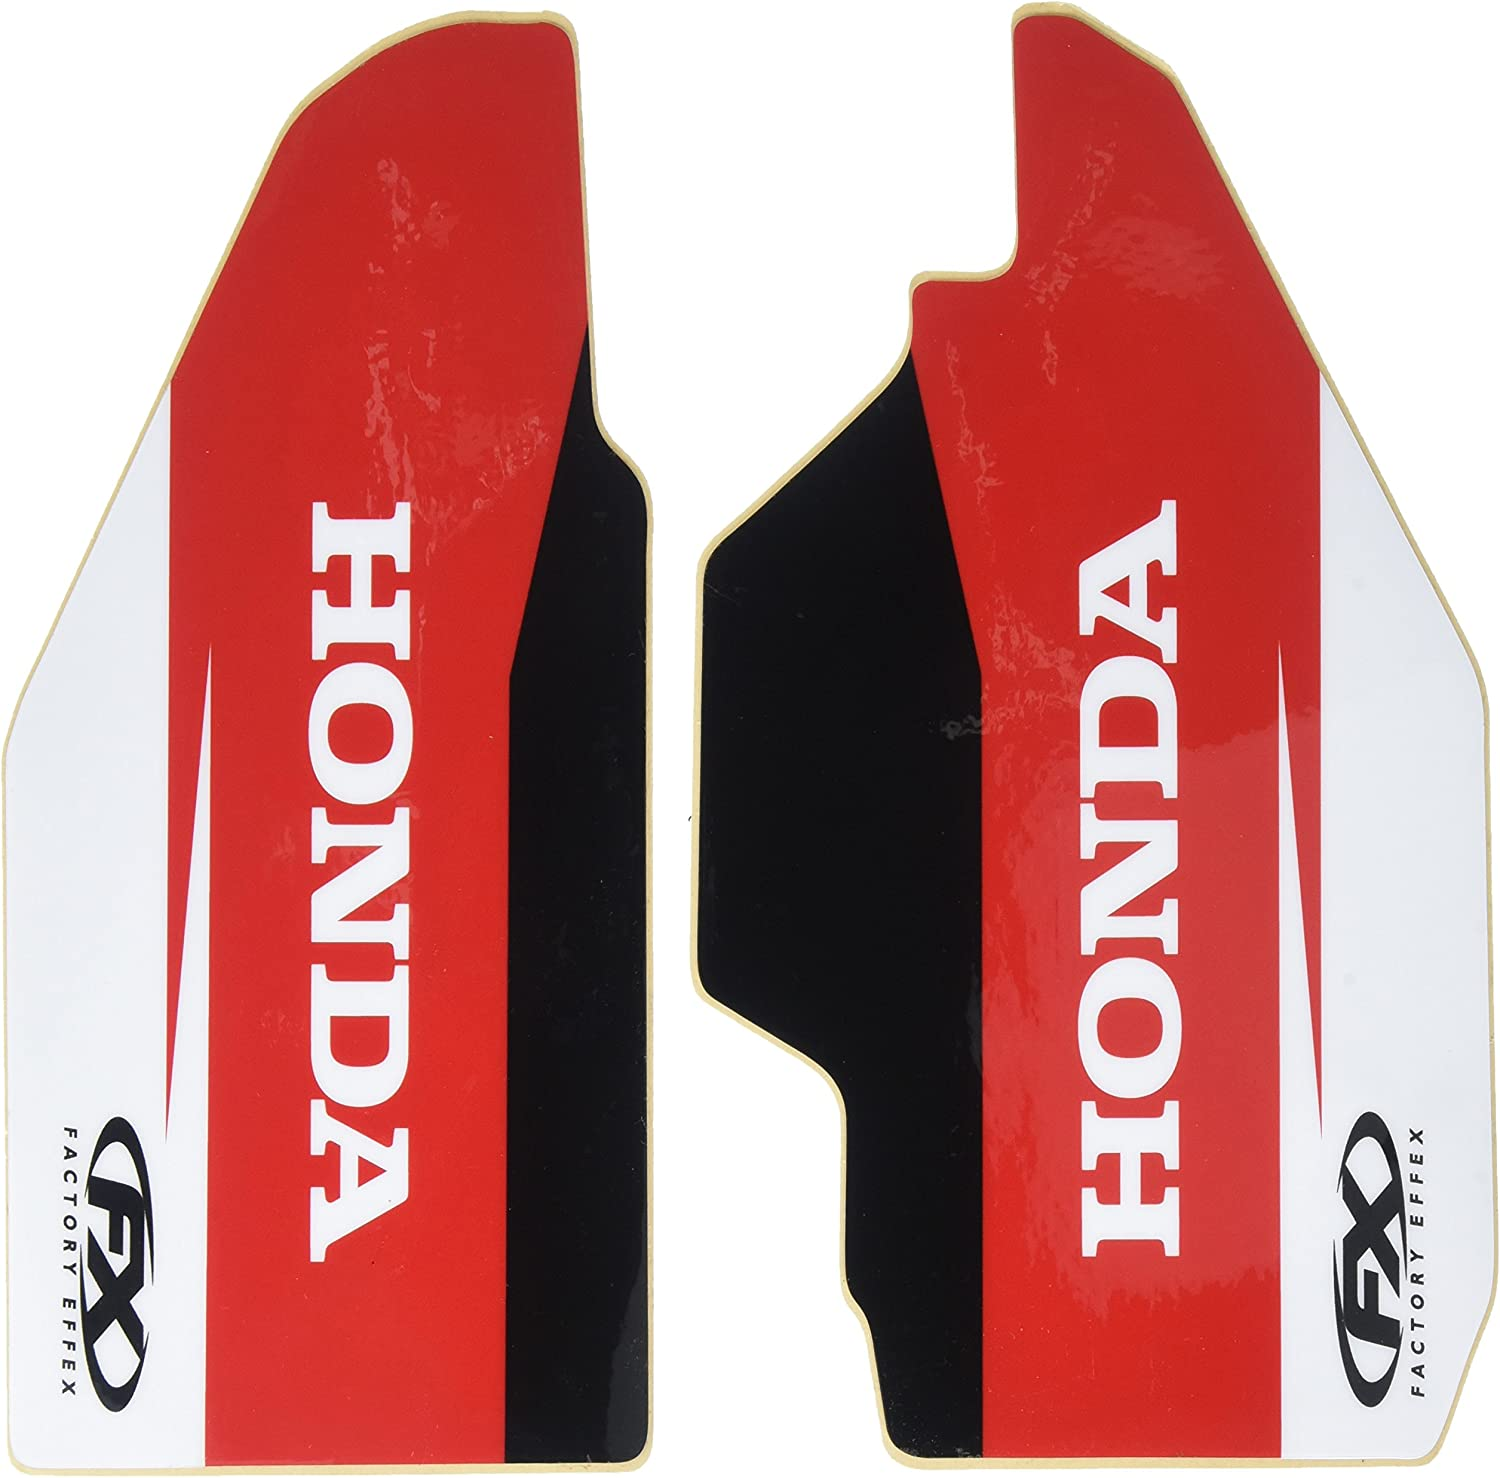 OEM Lower Fork Graphic Factory Effex 17-40302